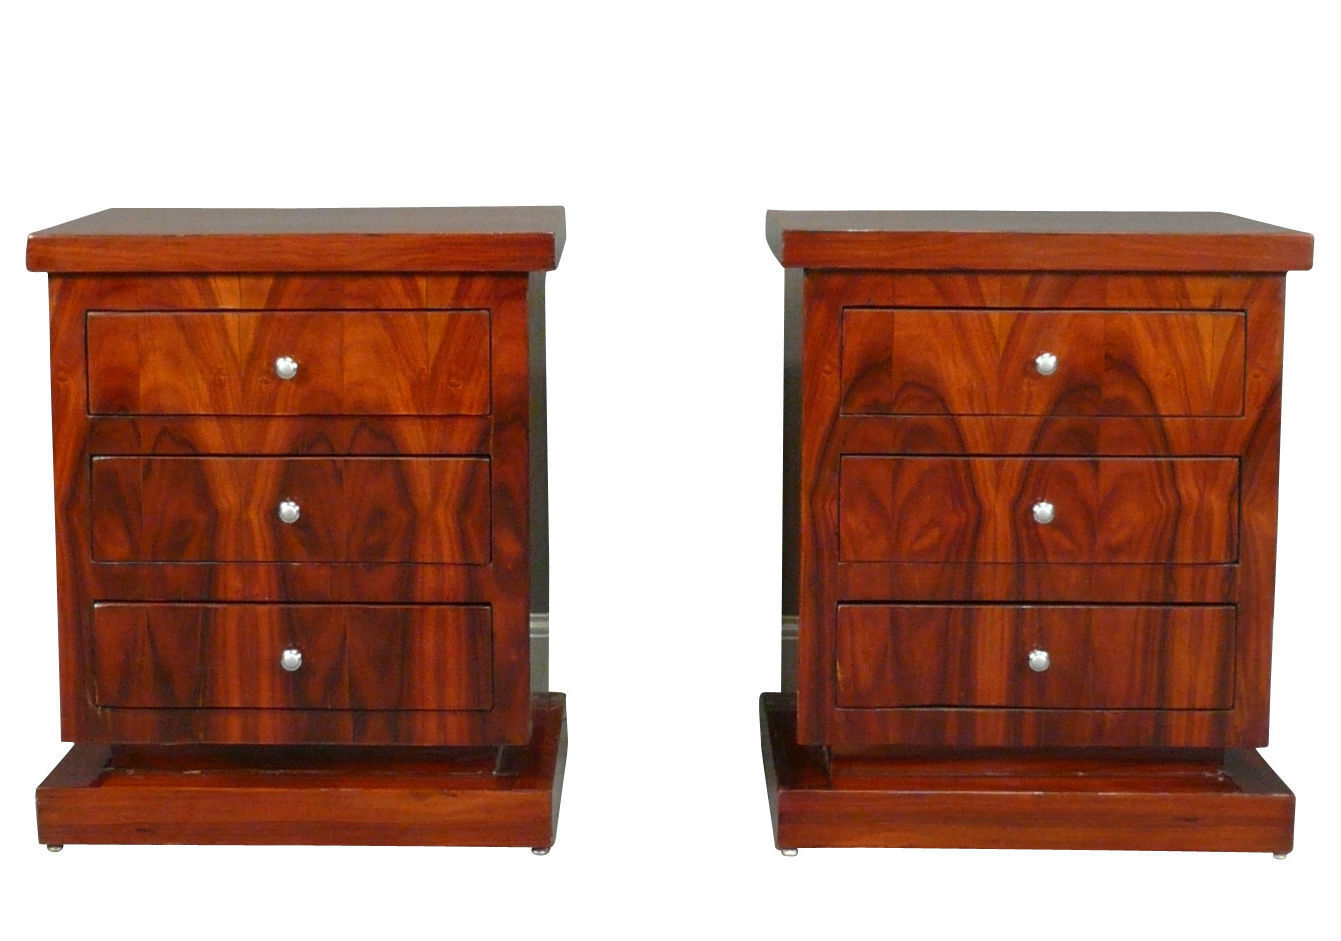 petite commode art d co en palissandre la paire mobilier art d co. Black Bedroom Furniture Sets. Home Design Ideas